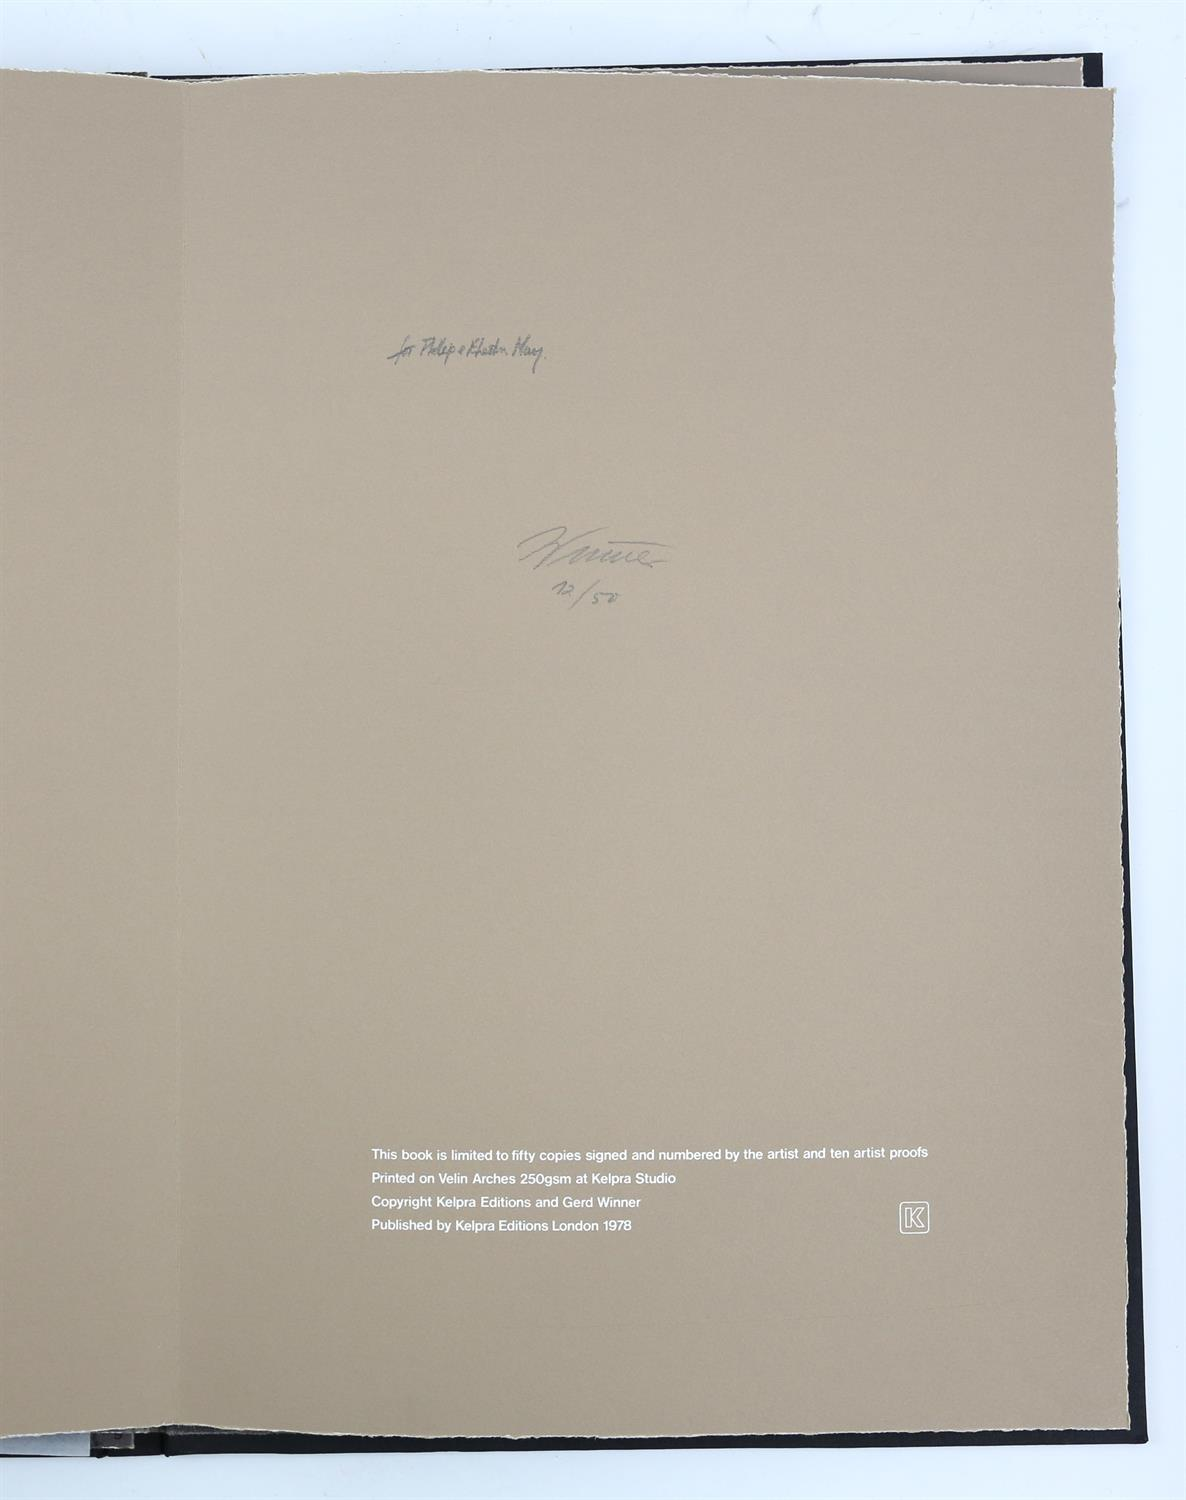 § Gerd Winner (German, b.1936). 'East One' portfolio of prints, signed and numbered 12/50 in pencil - Image 7 of 8